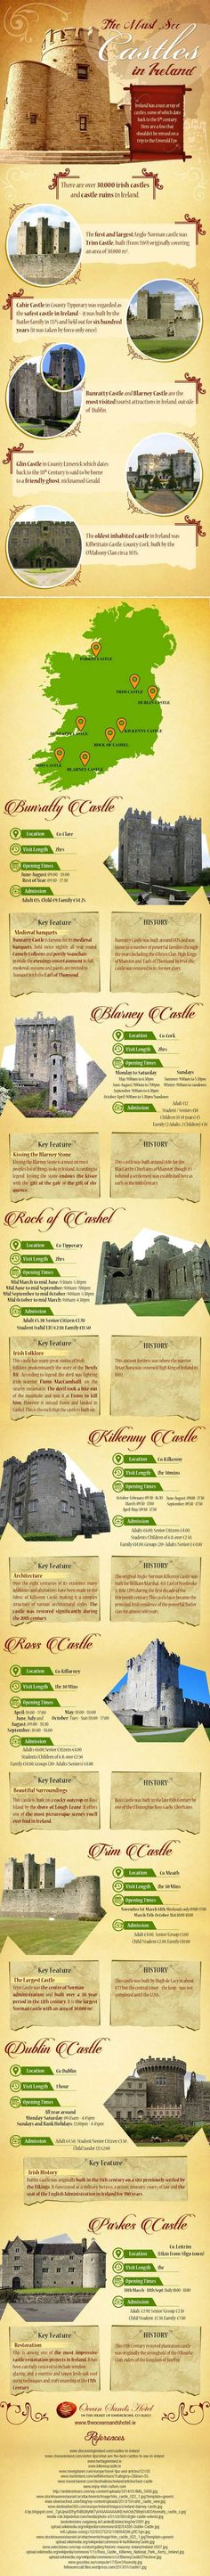 The Must-See Castles of Ireland list - a great infographic with information on visiting Ireland magnificent masterpieces from the past.